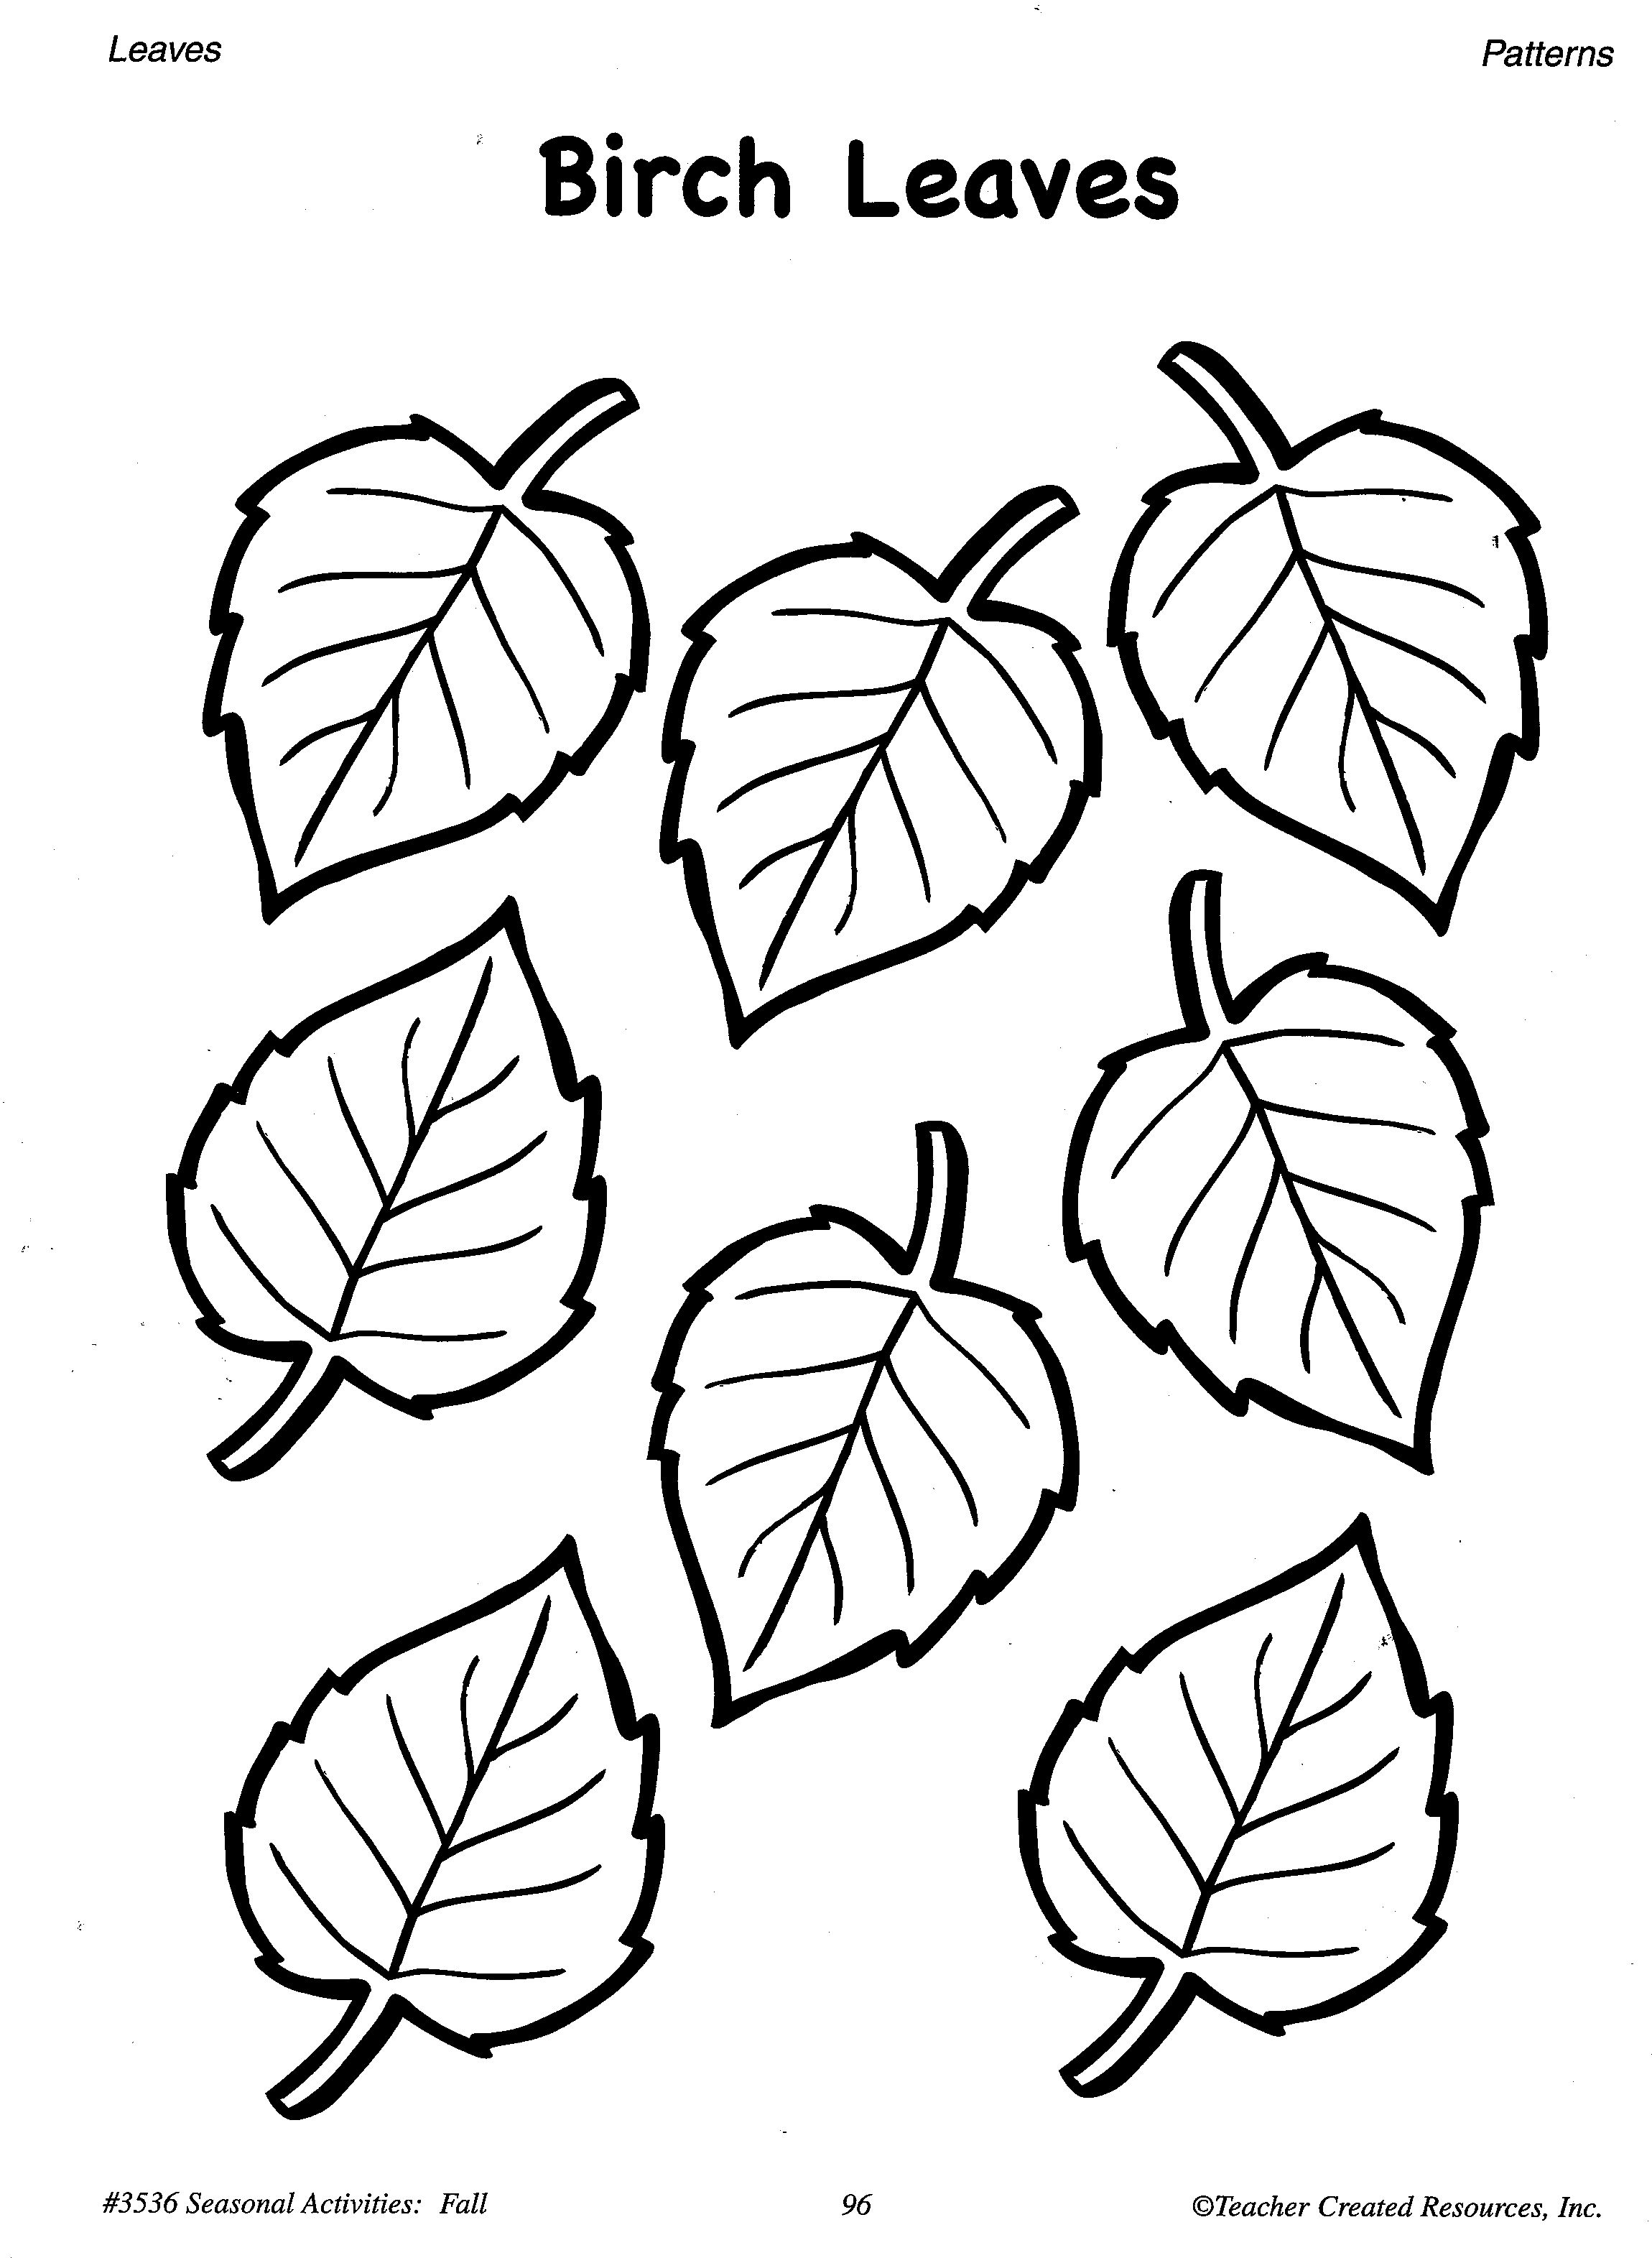 This is a graphic of Sizzling Fall Leaves Printable